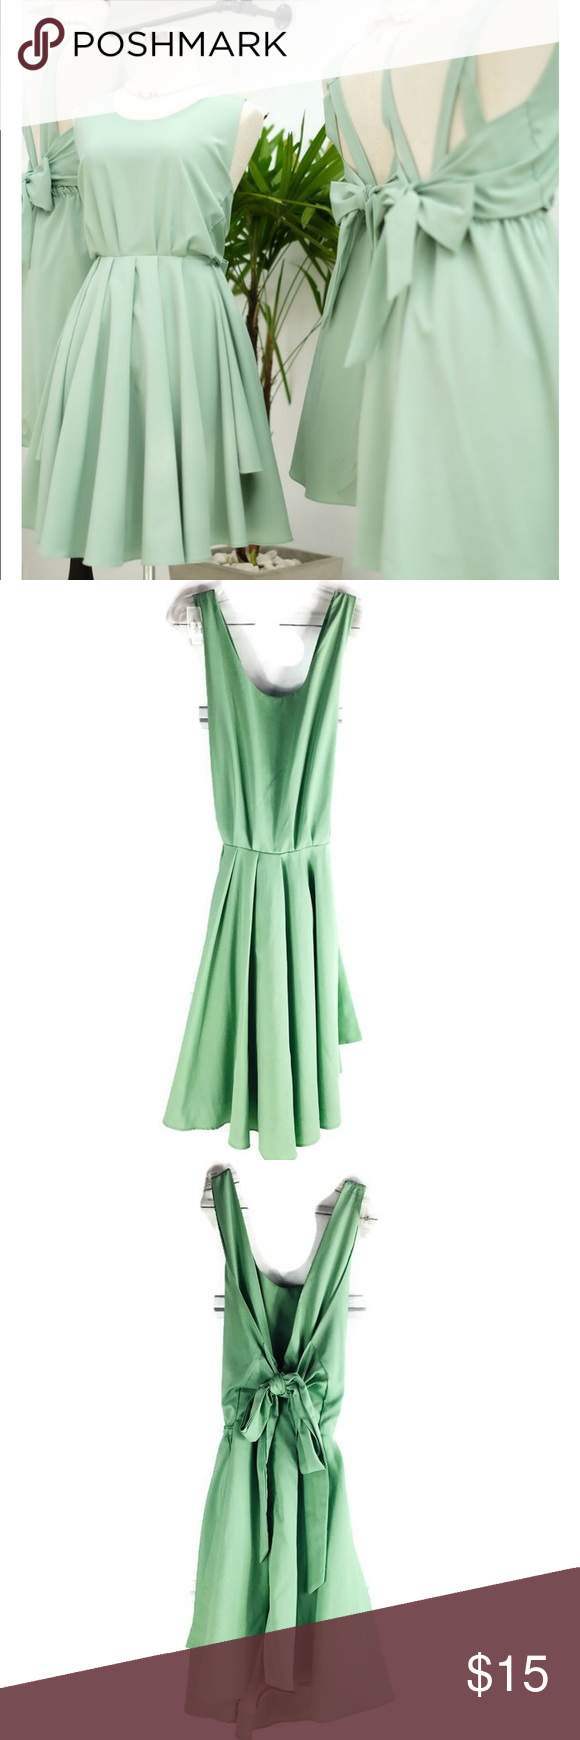 Keeratika Sage Green Backless Bridesmaid Dress GUC Keeratika Sage Green Backless Bridesmaid Dress. In good used condition does have a couple of pin holes. Does not have size tag be sure to read measurements. Approximately 18 inches arm pit to arm pit laying flat 38 inches long. keeratika Dresses Wedding #sagegreendress Keeratika Sage Green Backless Bridesmaid Dress GUC Keeratika Sage Green Backless Bridesmaid Dress. In good used condition does have a couple of pin holes. Does not have size tag b #sagegreenbridesmaiddresses